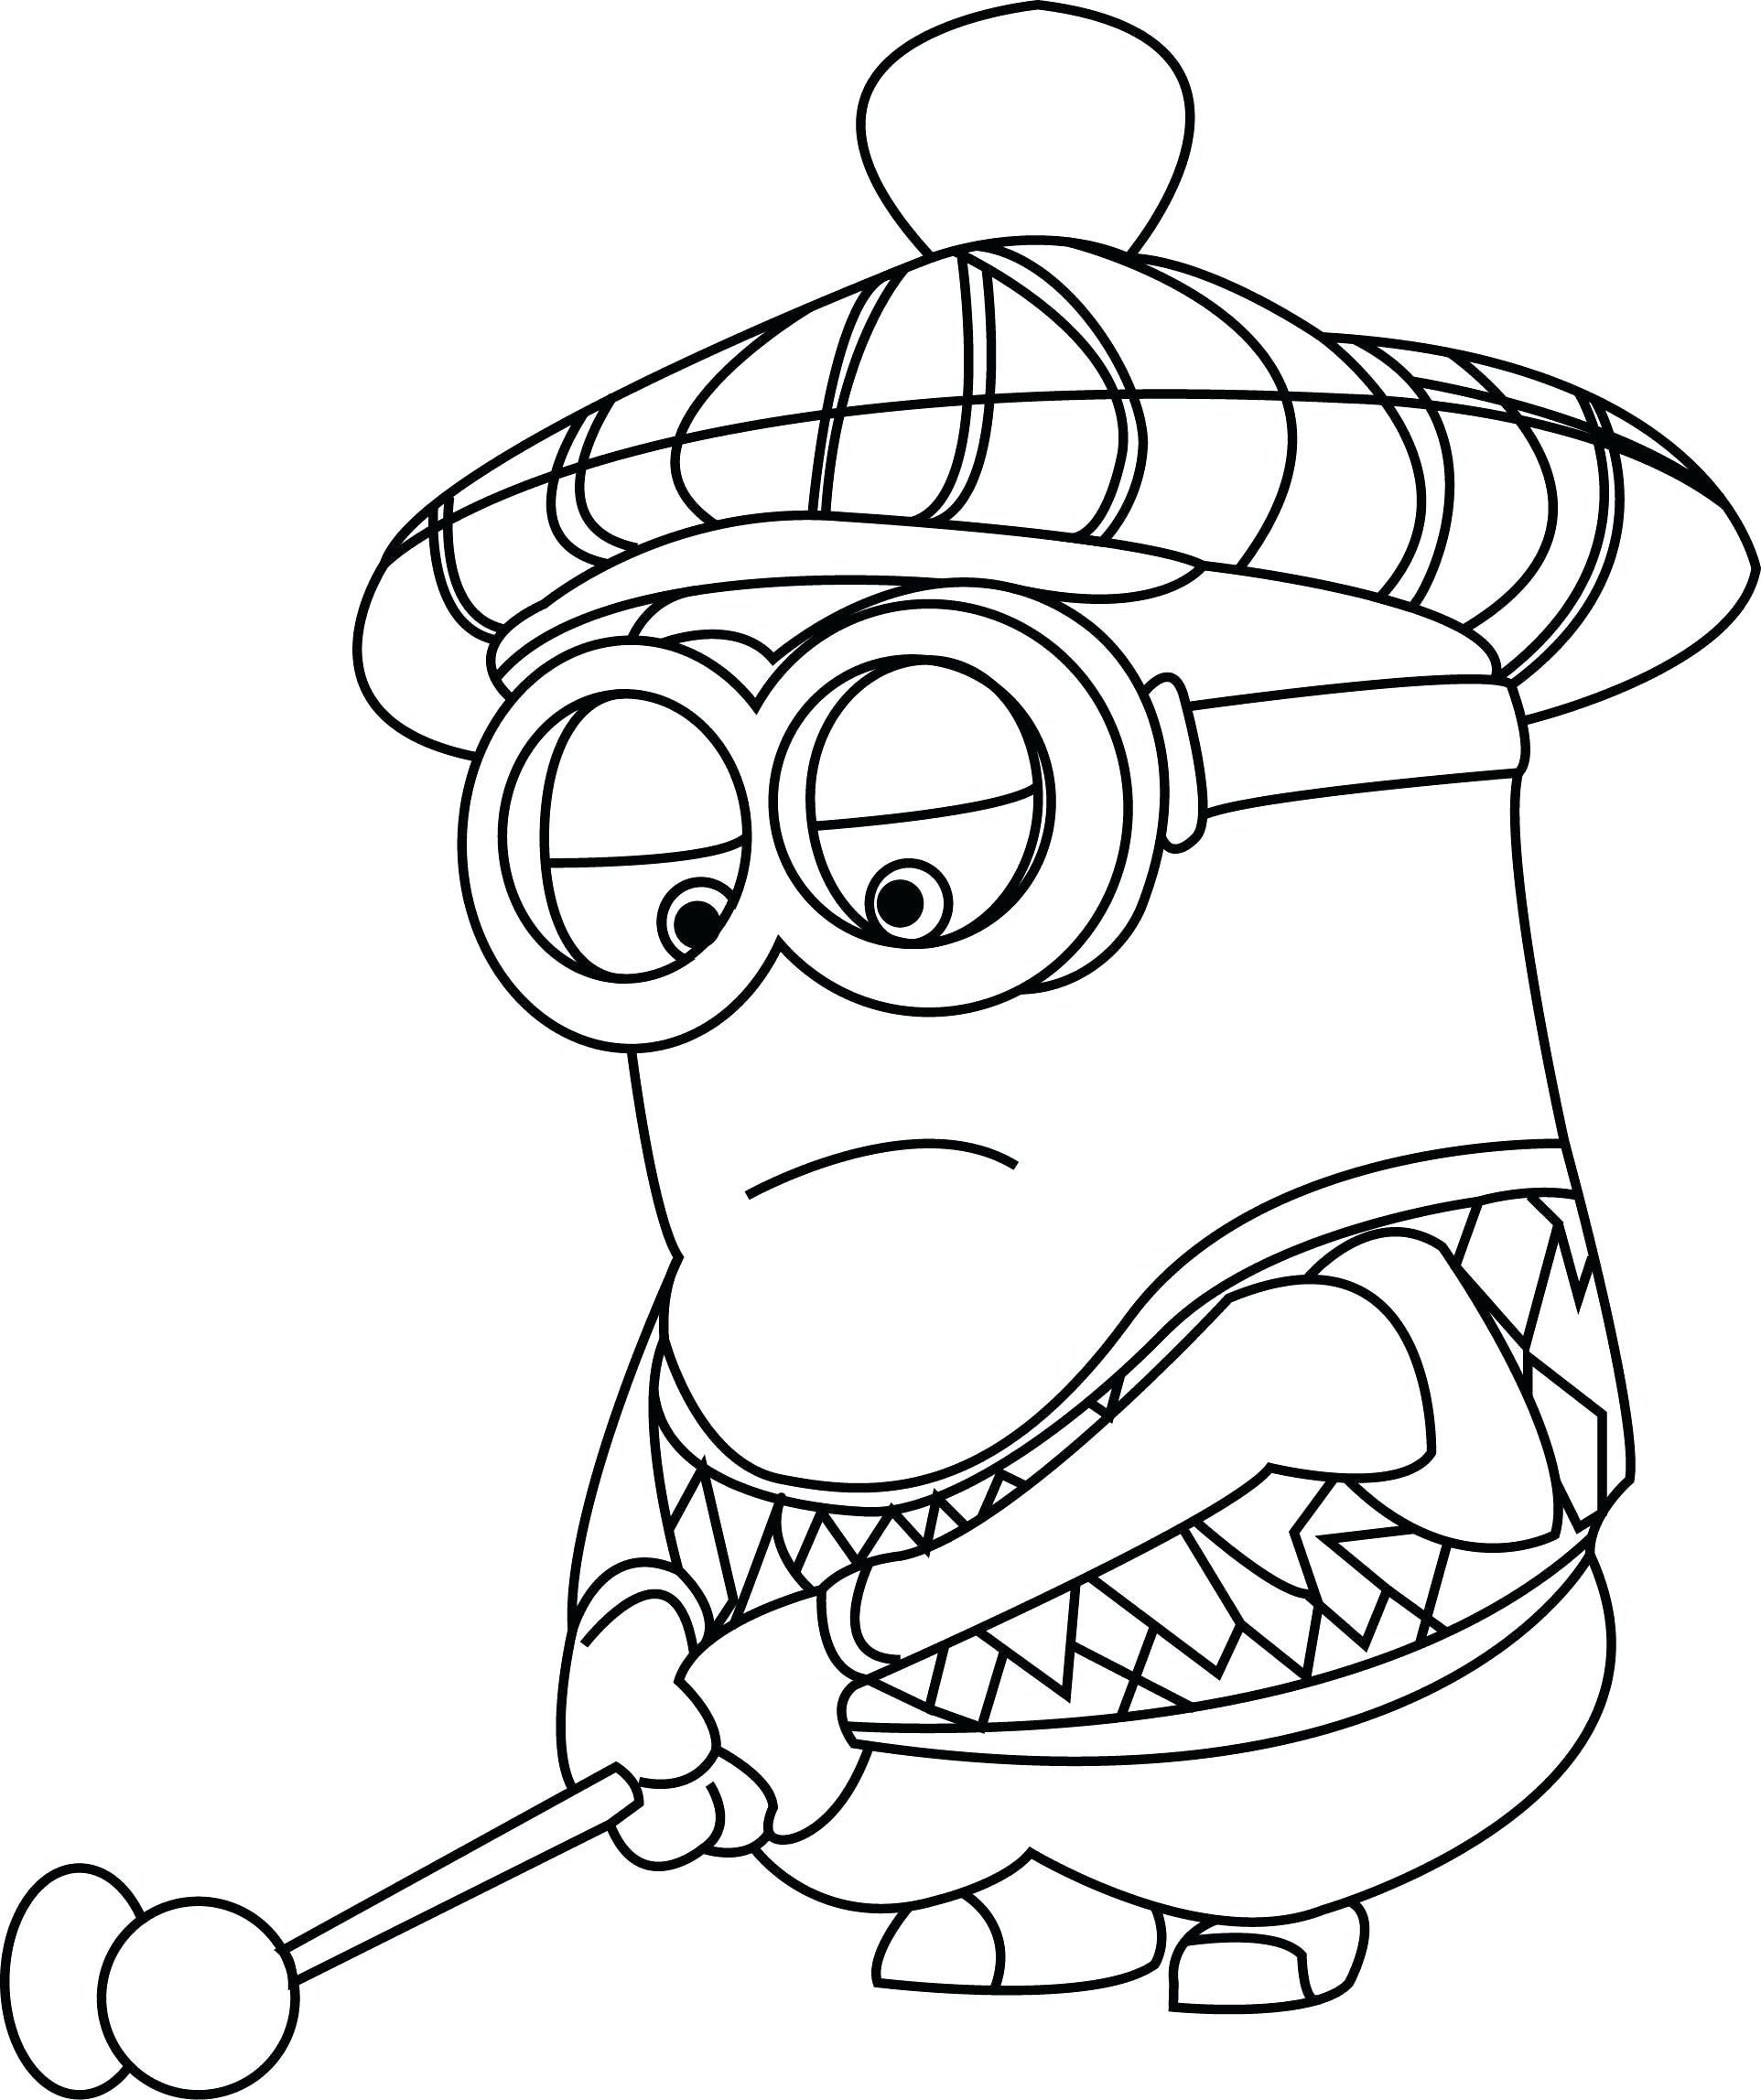 Minions Coloring Pages To Print Fresh Cute Minion Coloring Pages Niagarapaper In 2020 Minions Coloring Pages Minion Coloring Pages Sports Coloring Pages